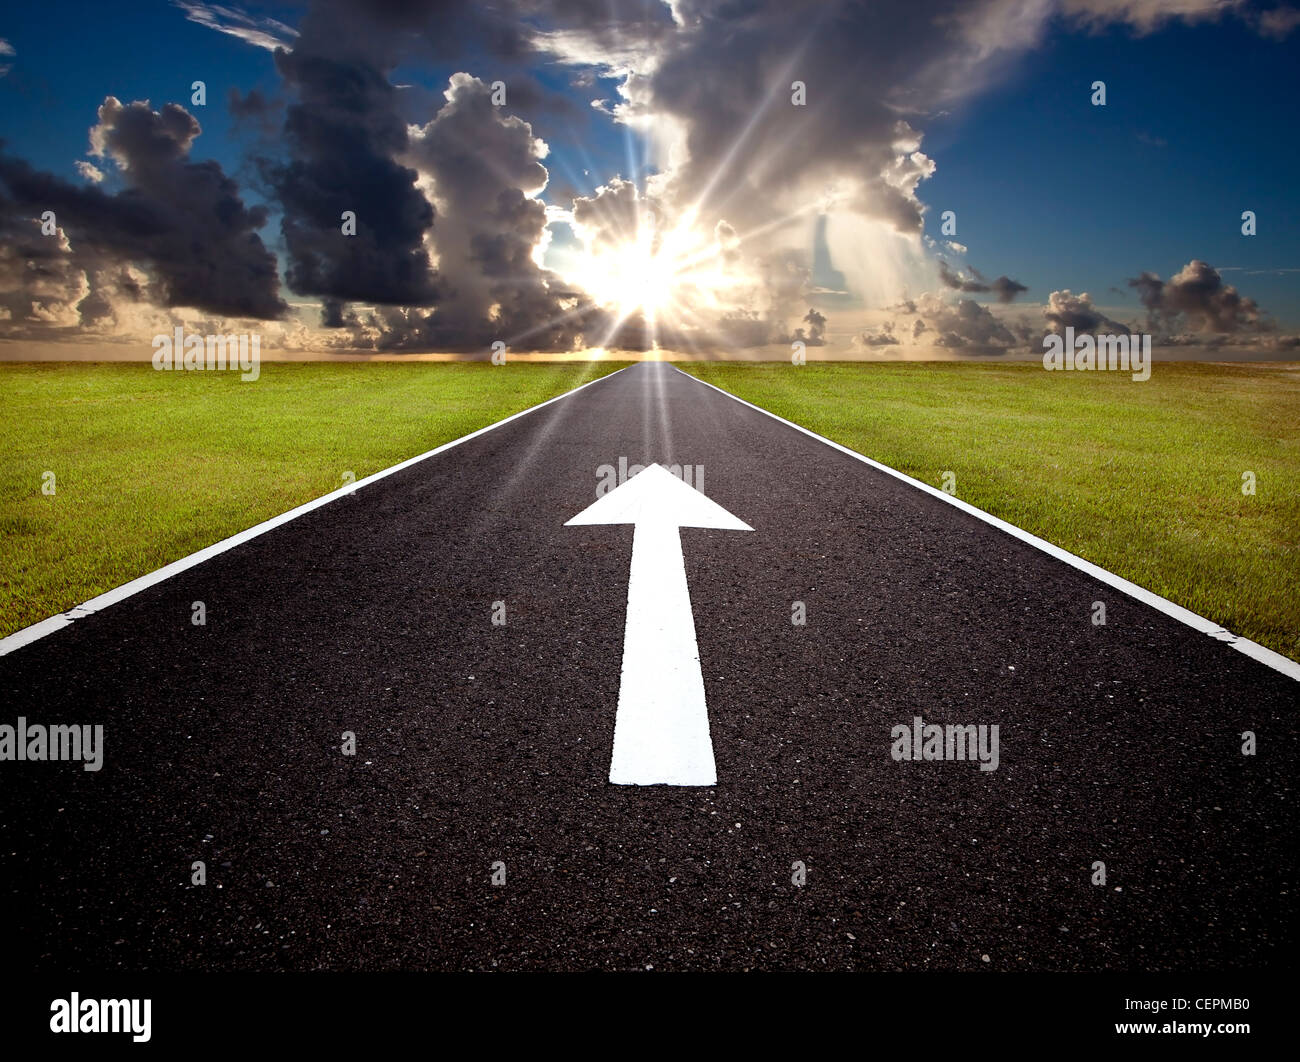 The road to the sunrise and hope. - Stock Image